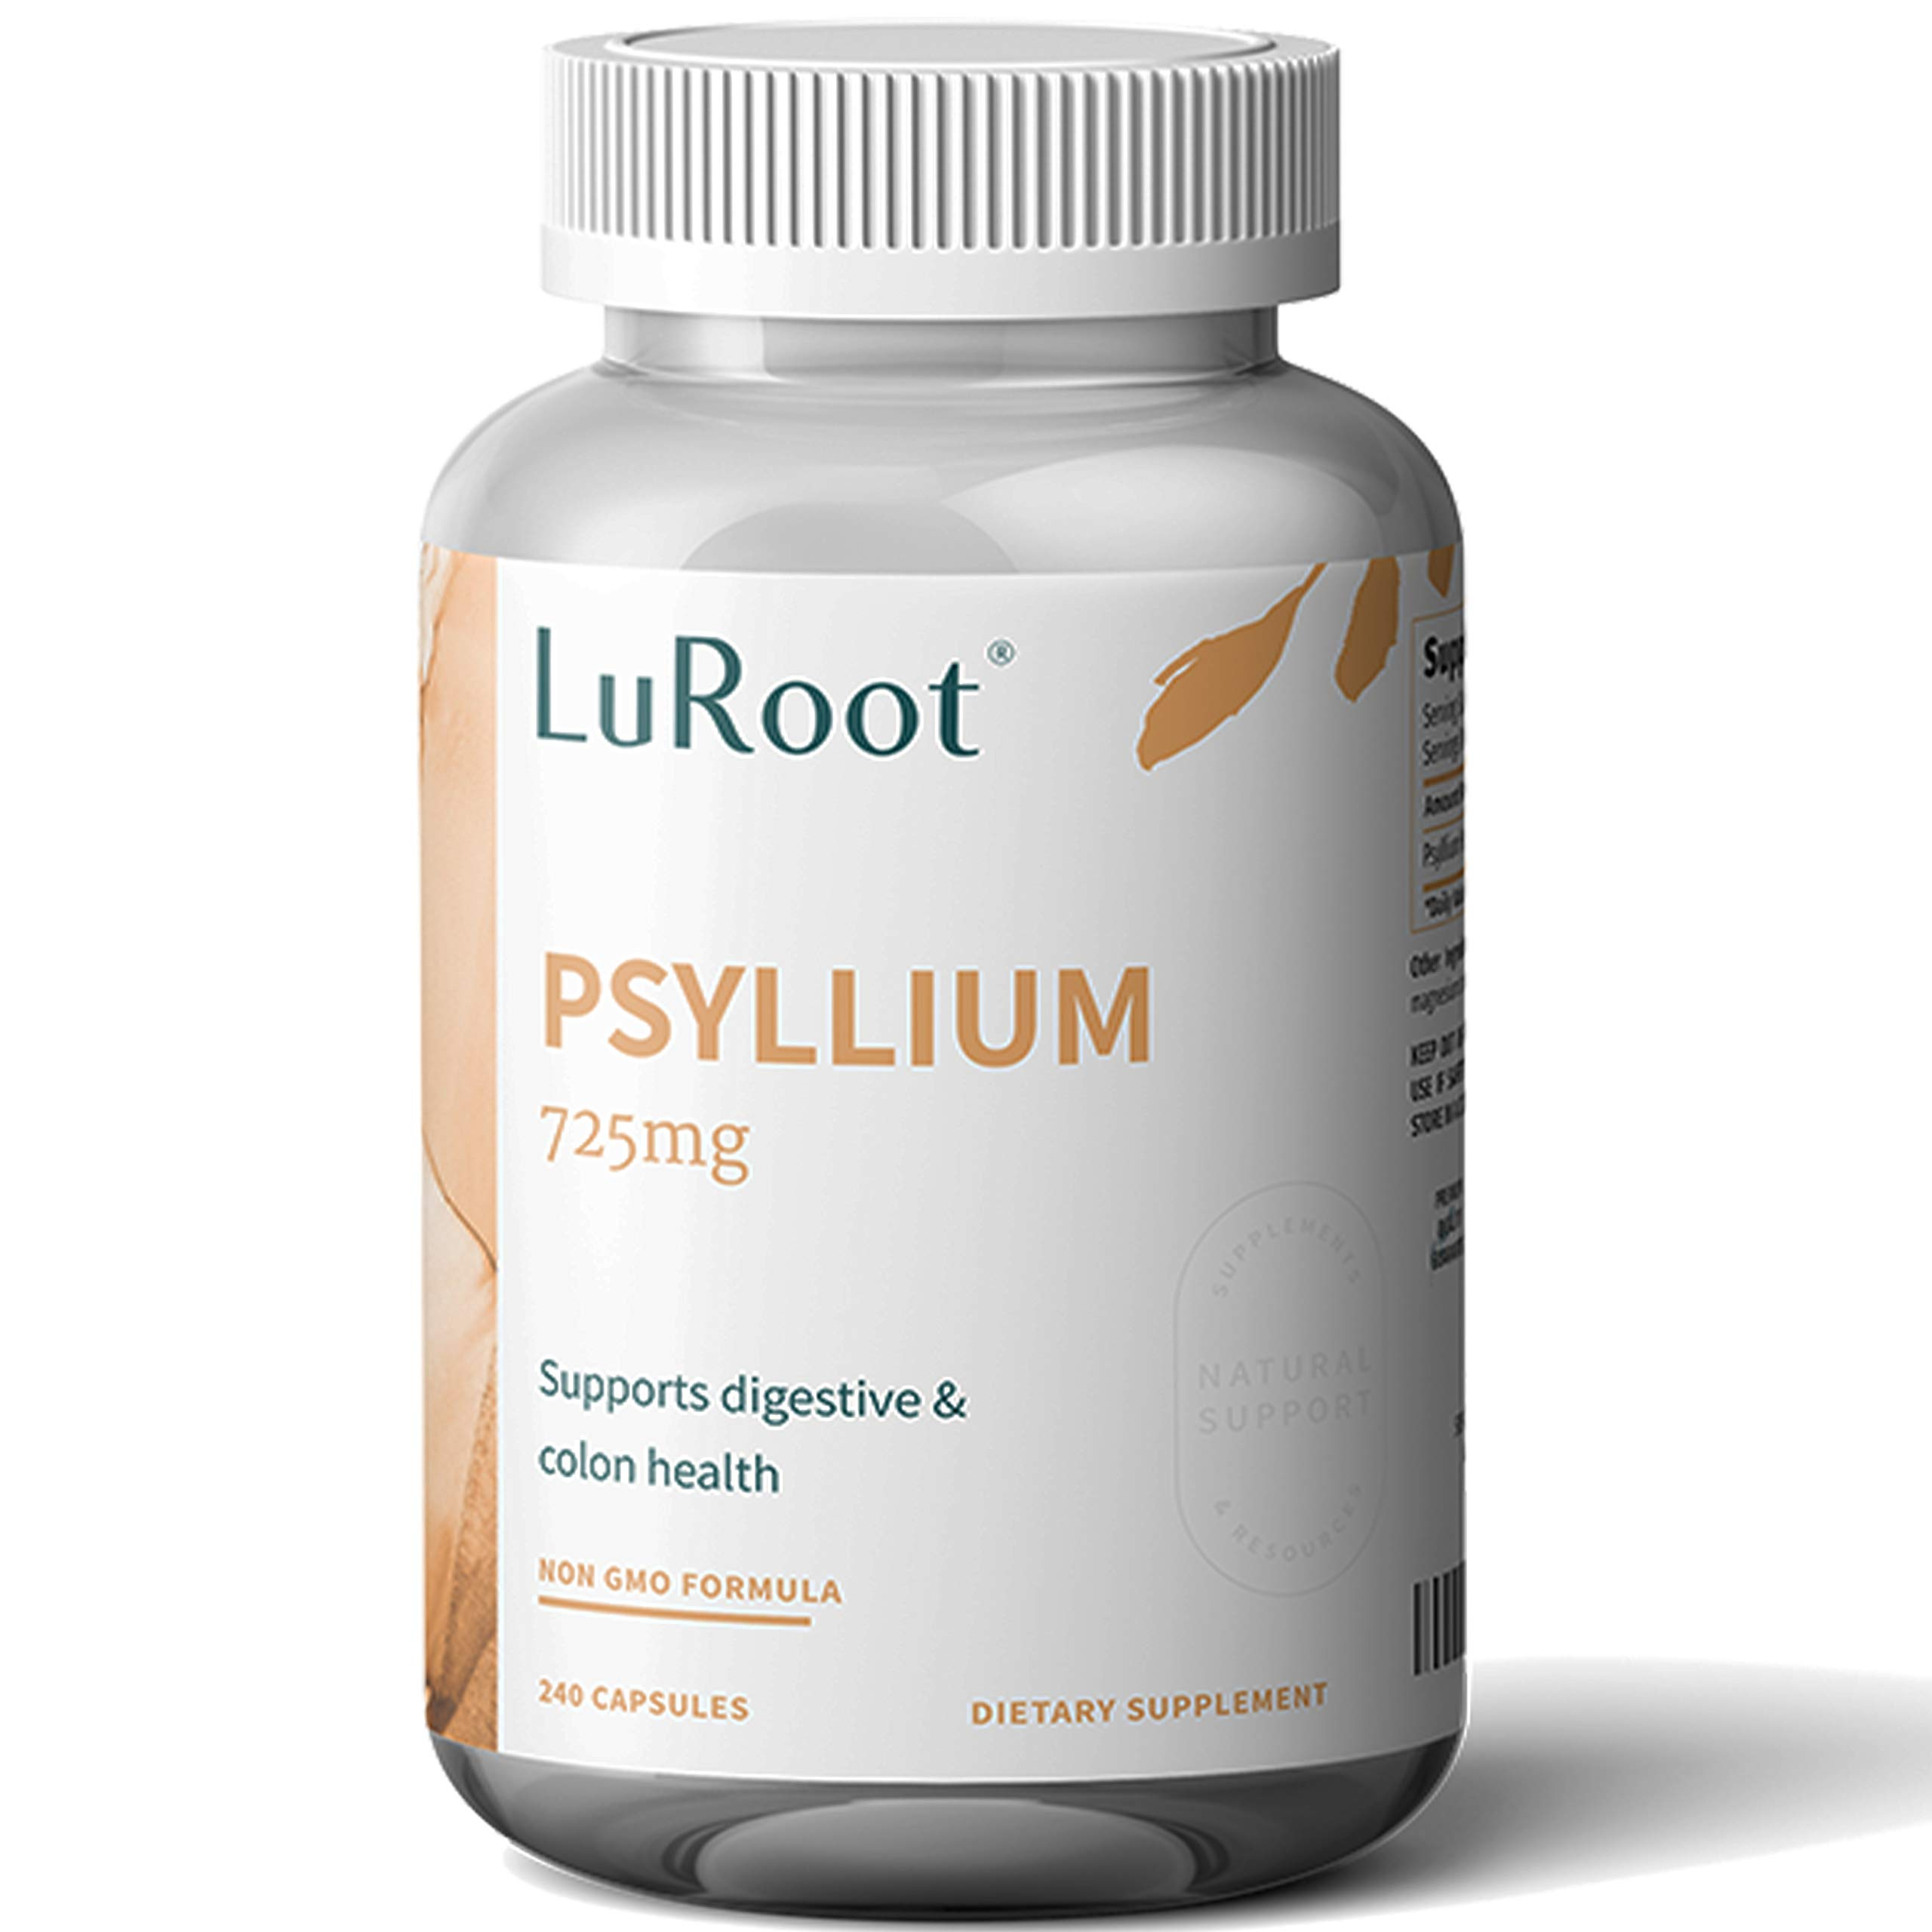 Psyllium Husk Seed Powder Capsules, 240 Capsules - 725 mg per Serving, Made with Organic Non-GMO & Gluten Free psyllium Husk - Soluble Fiber Supplement by LuRoot (Pack 1) by LuRoot